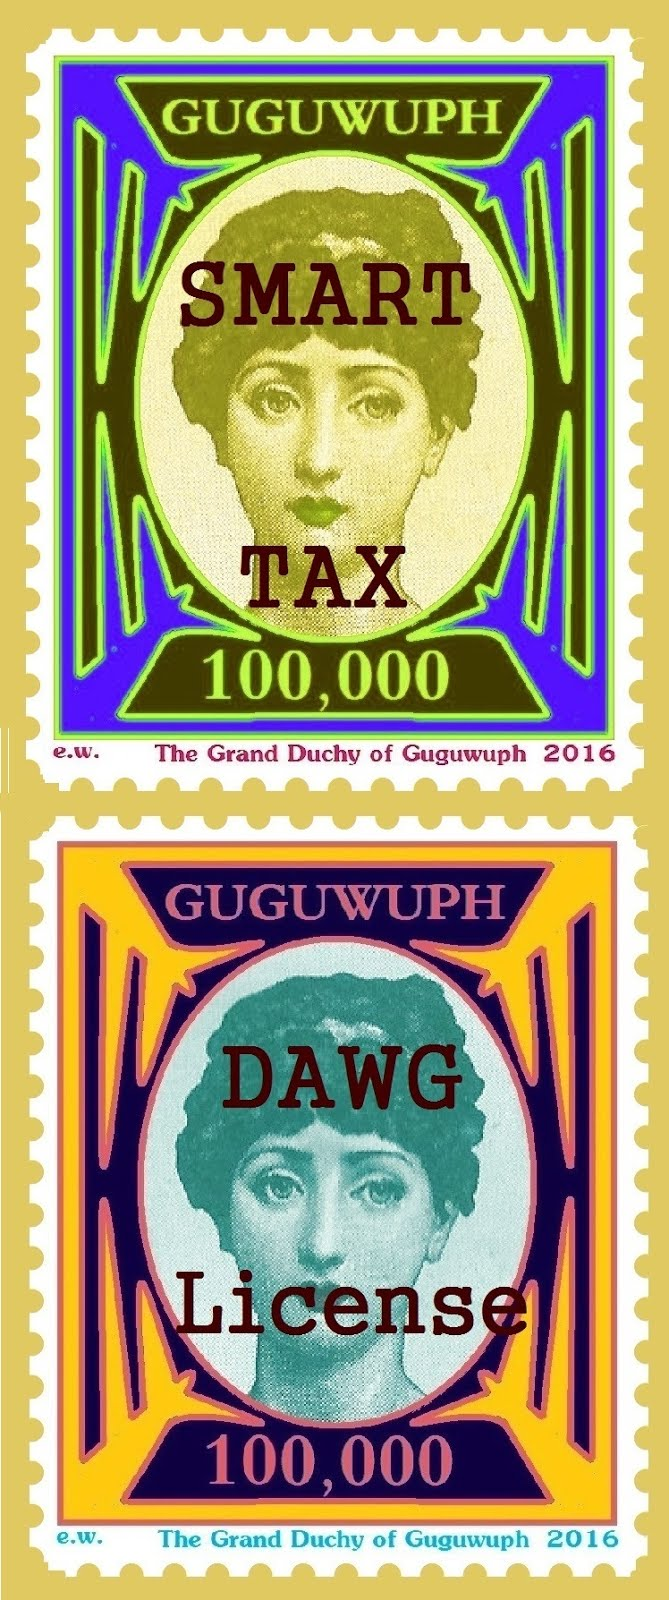 STAMPS OF THE GRAND DUCHY OF GUGUWUPH